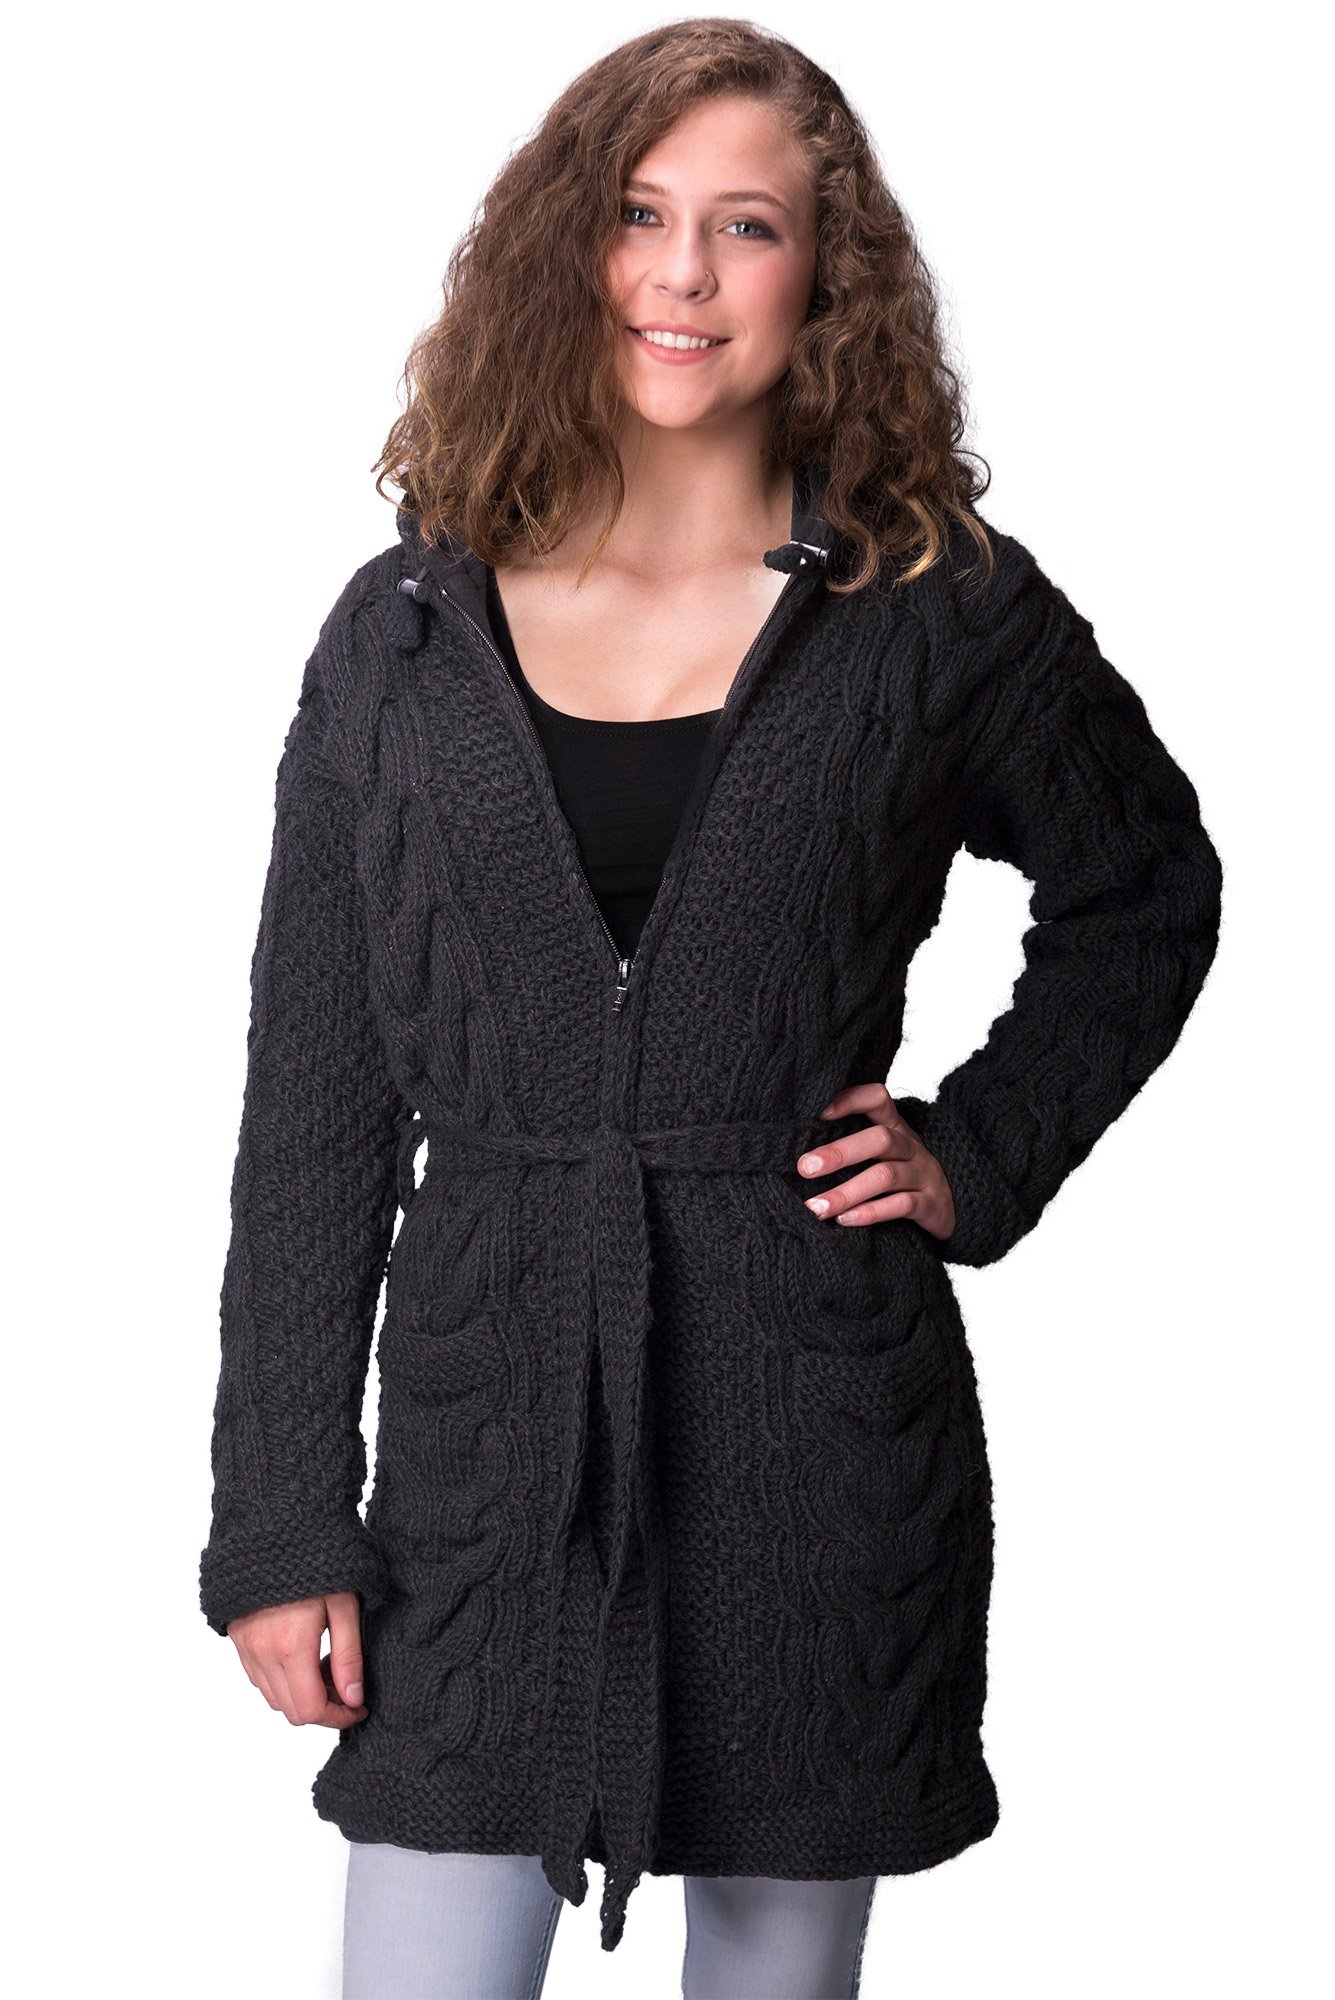 TCG Women's Winter Coat - Hand Knit Wool Outerwear Hoodie - Ex-Long, Black Cable